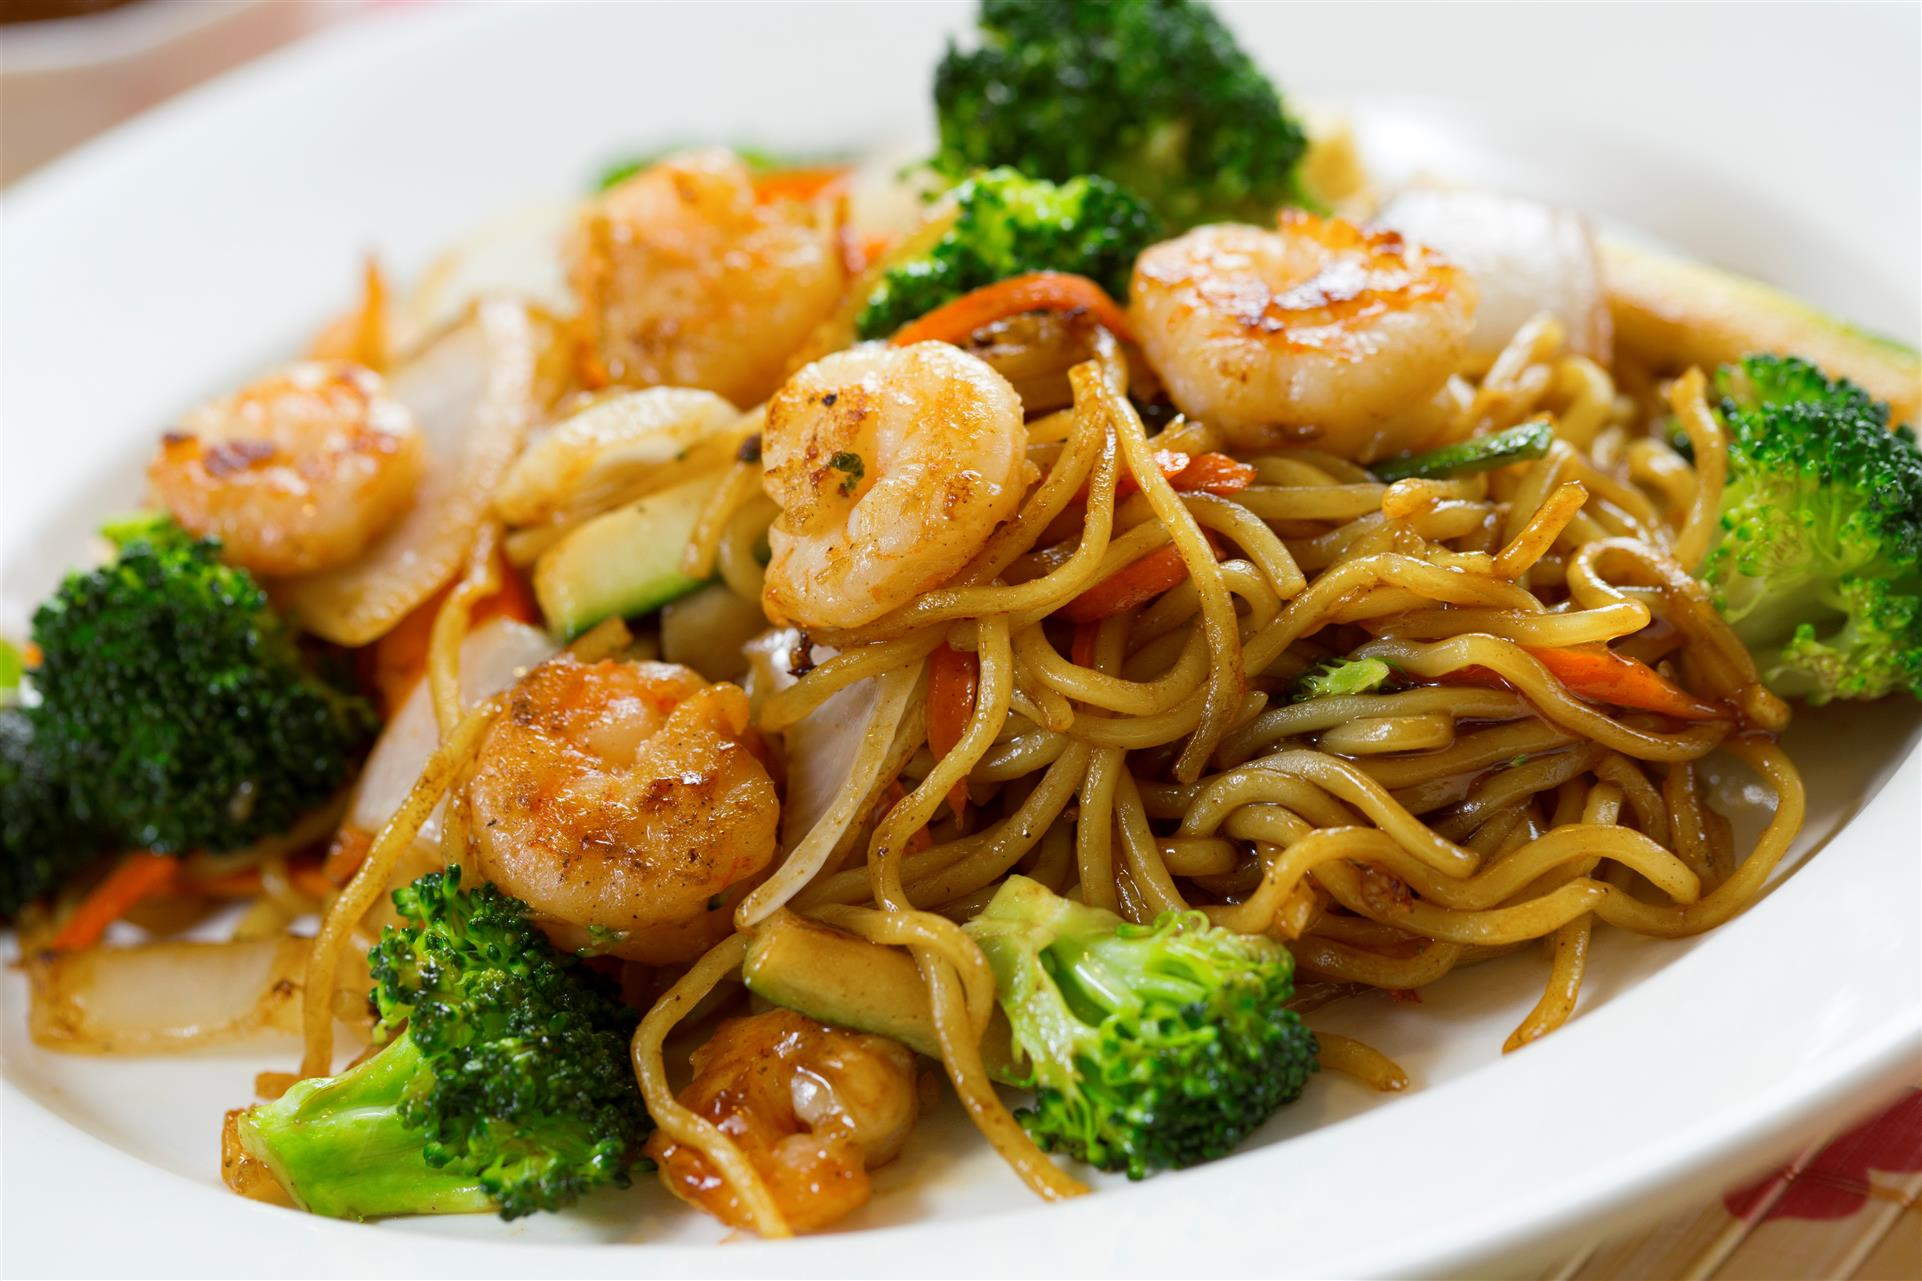 shrimp lo mein with vegetables on a plate